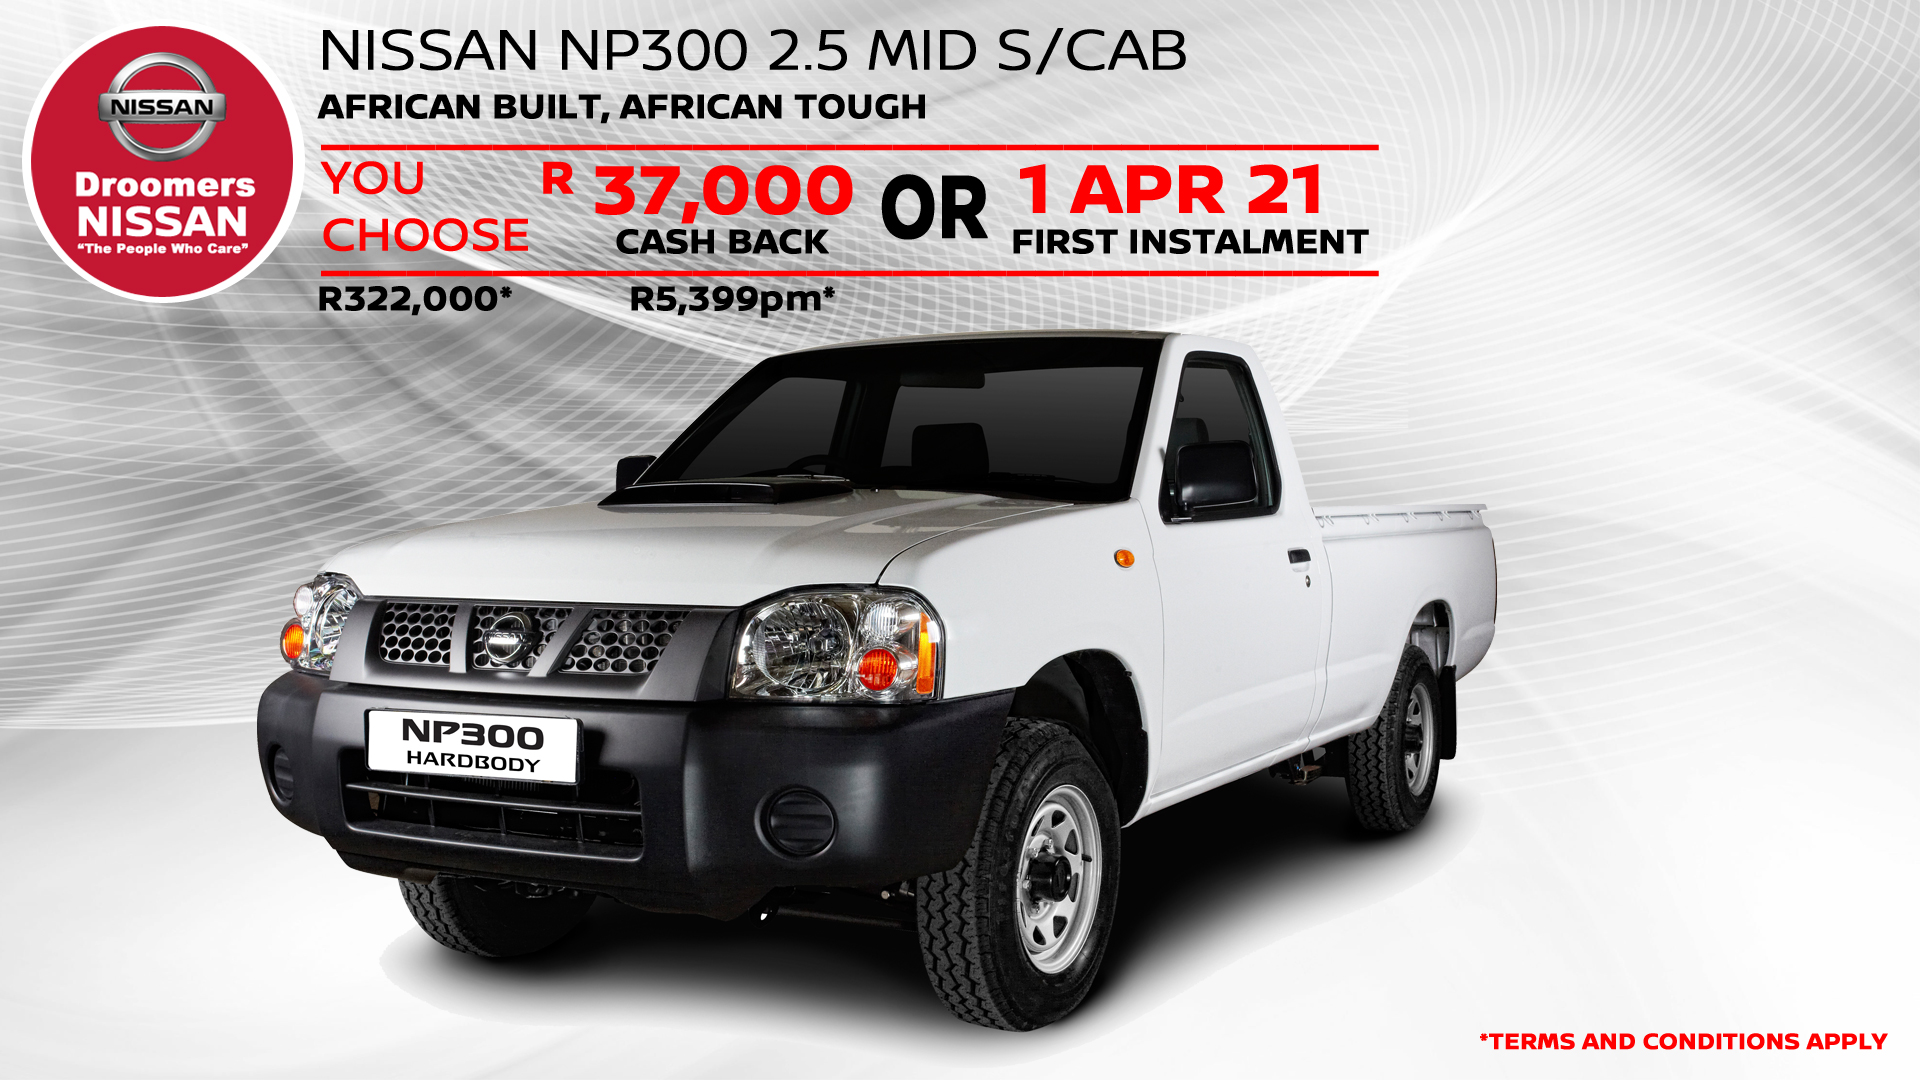 NISSAN NP300 2.5 MID S/CAB